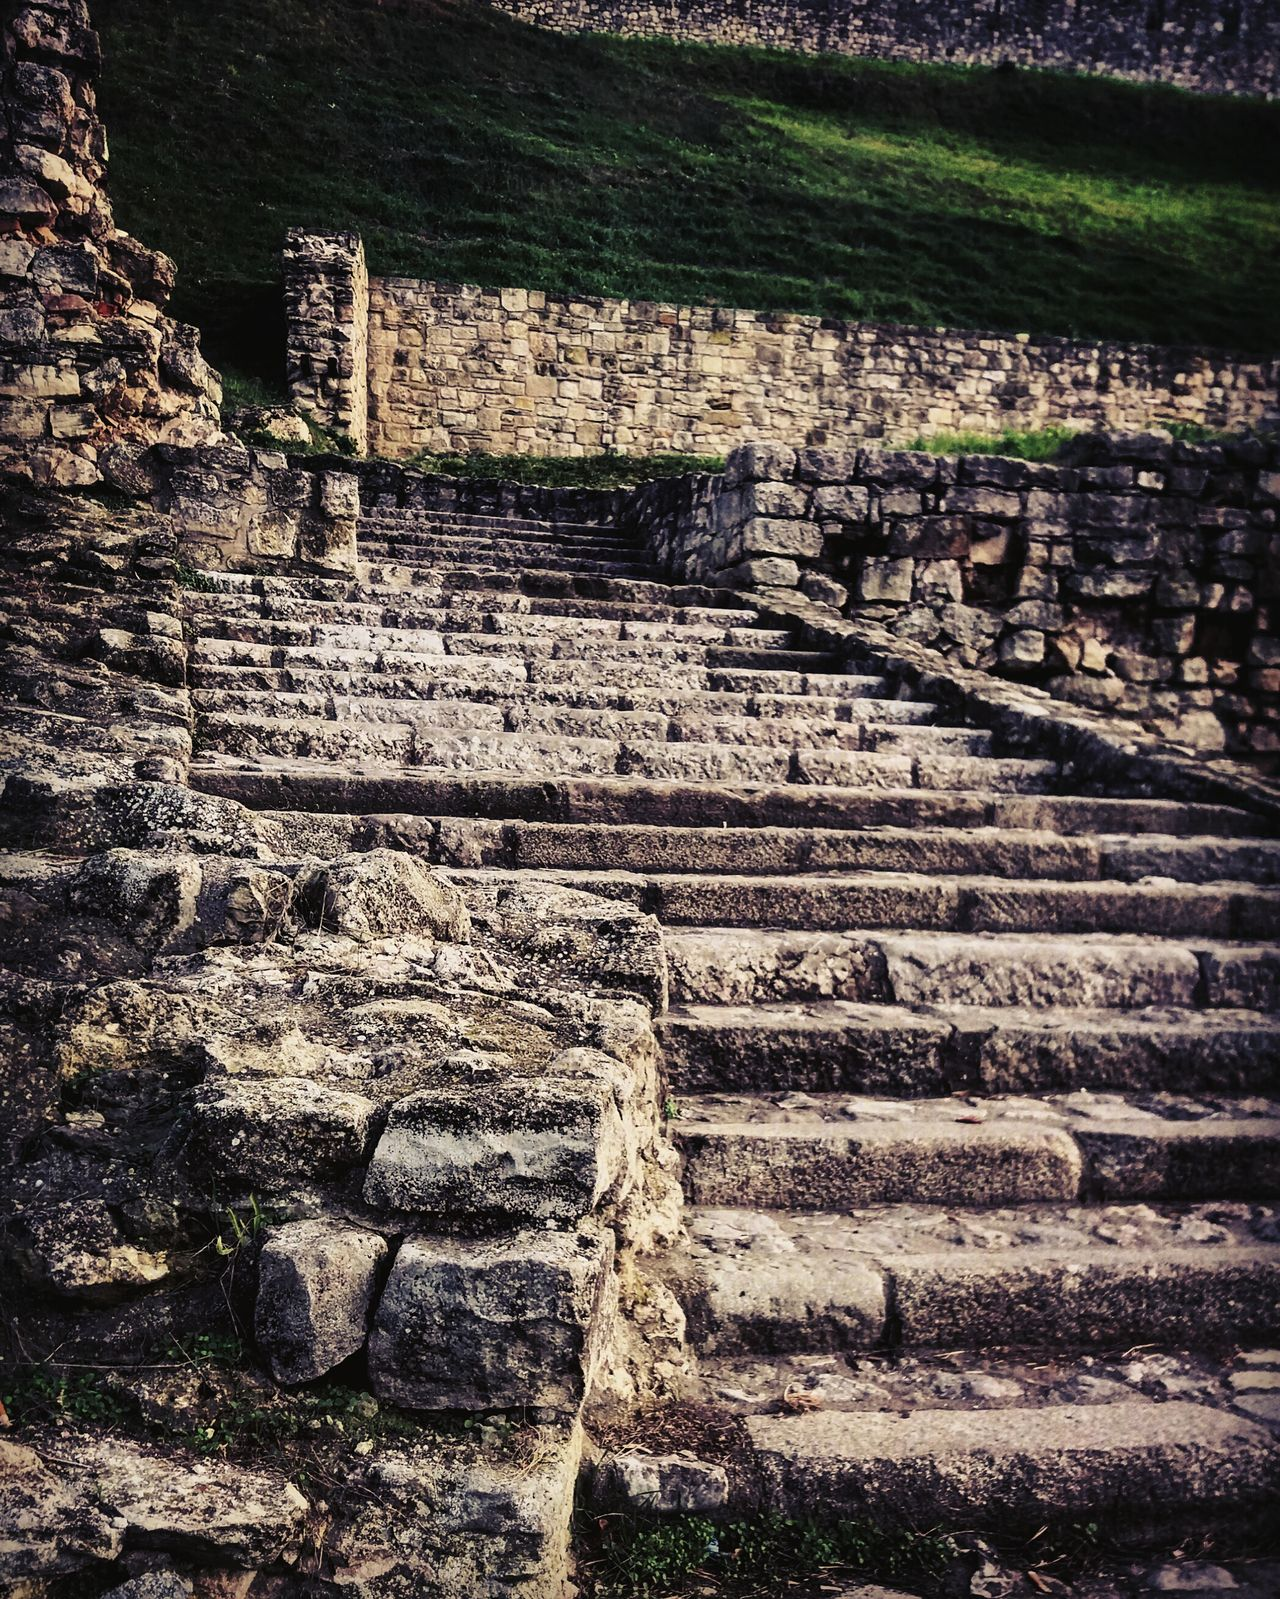 Stairs Stairs & Shadows Stairs_collection Stairs To Heaven Kalemegdan  Kalemegdanfortress Kalemegdan Park Kalemegdanska Tvrdjava Beograd Belgrade Beograd Fortress Fortress Europe Serbia Serbia,Belgrade Stone Stone Steps Stone